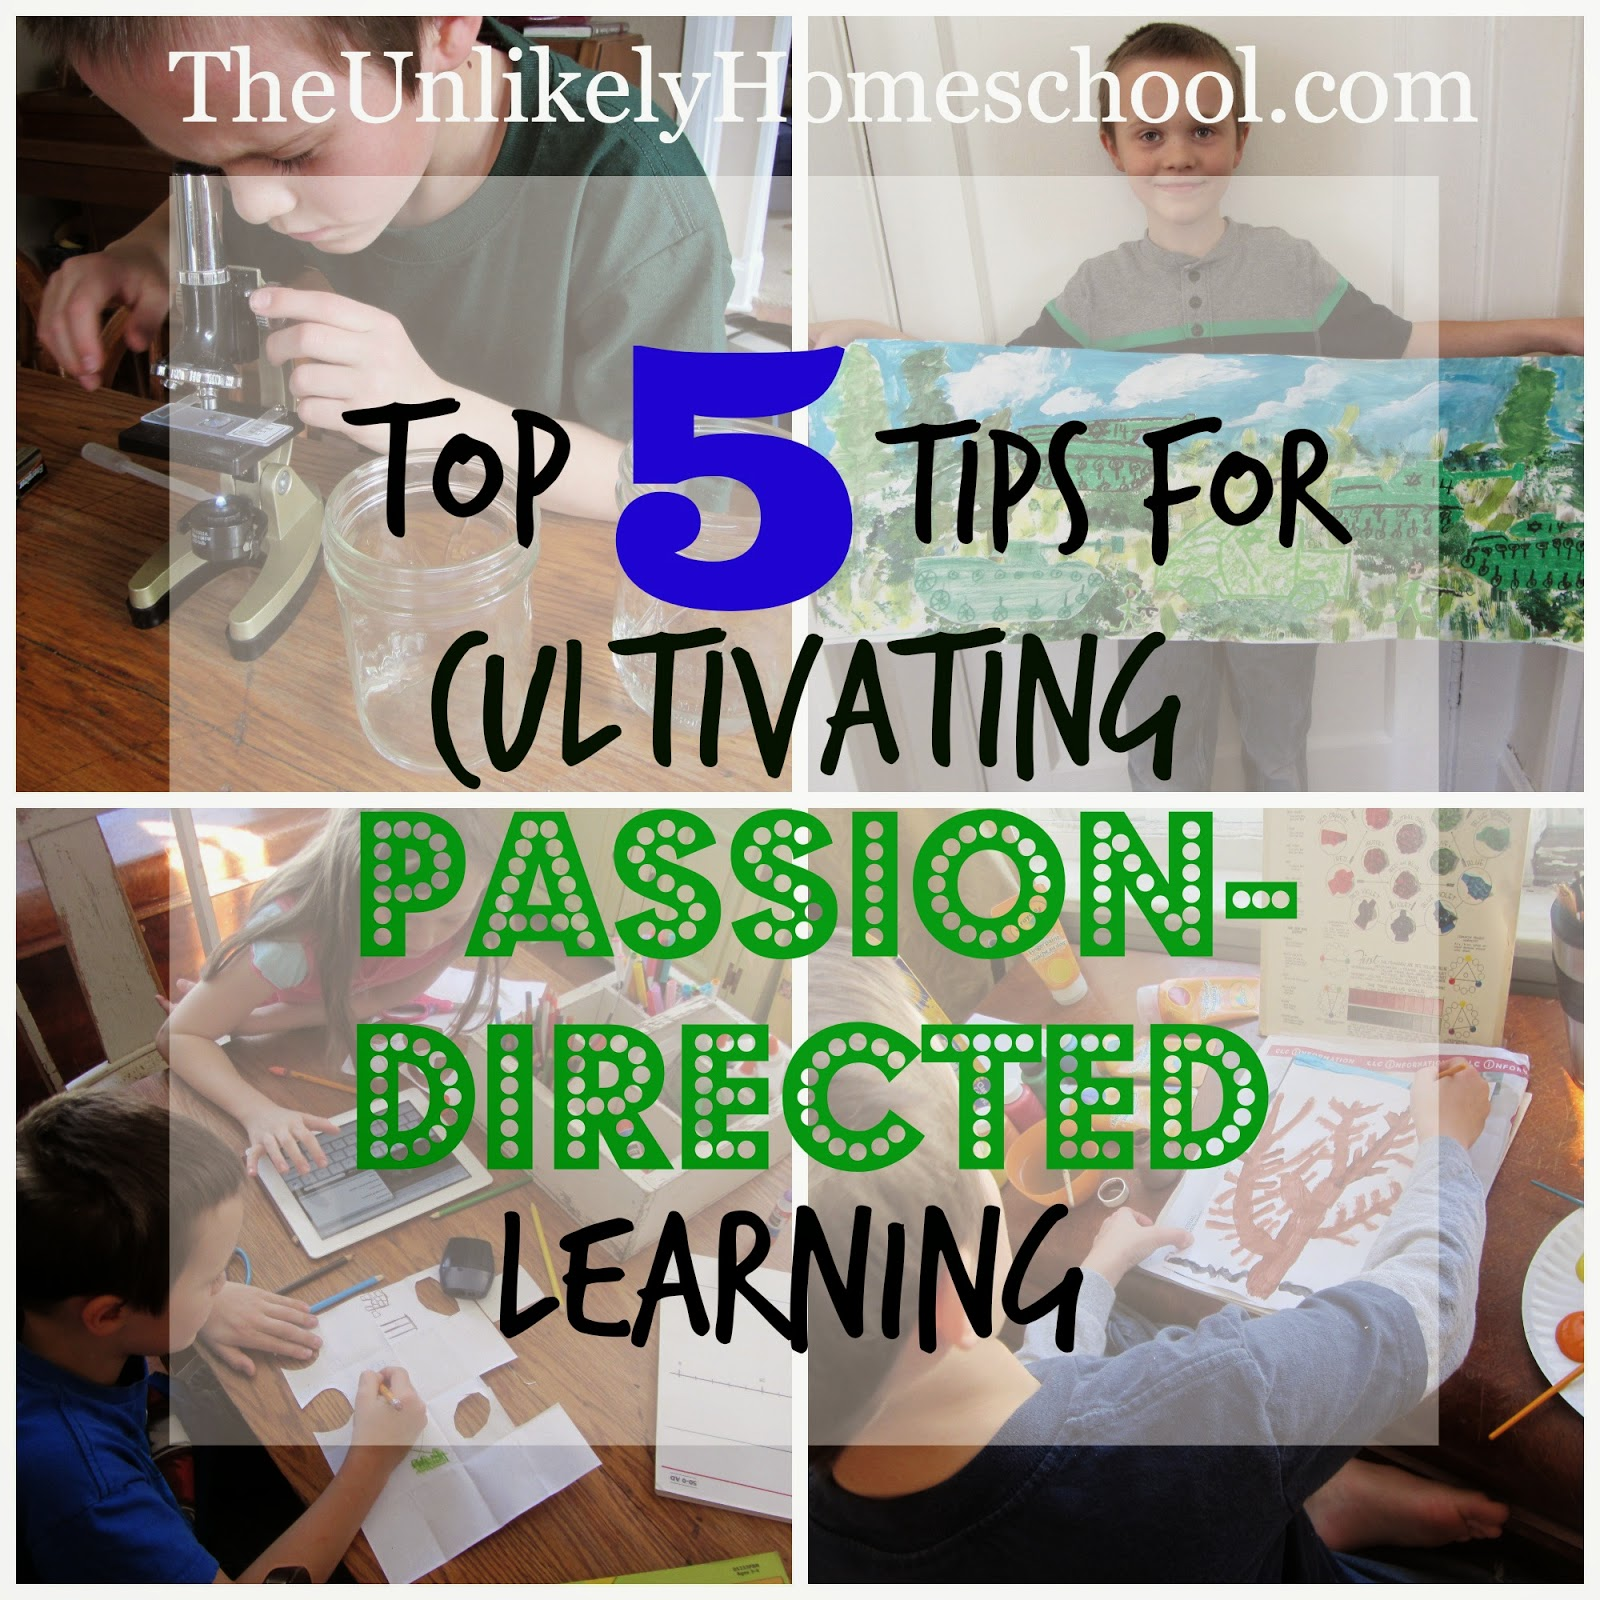 Top 5 Tips for Cultivating Passion-Directed Learning {The Unlikely Homeschool}